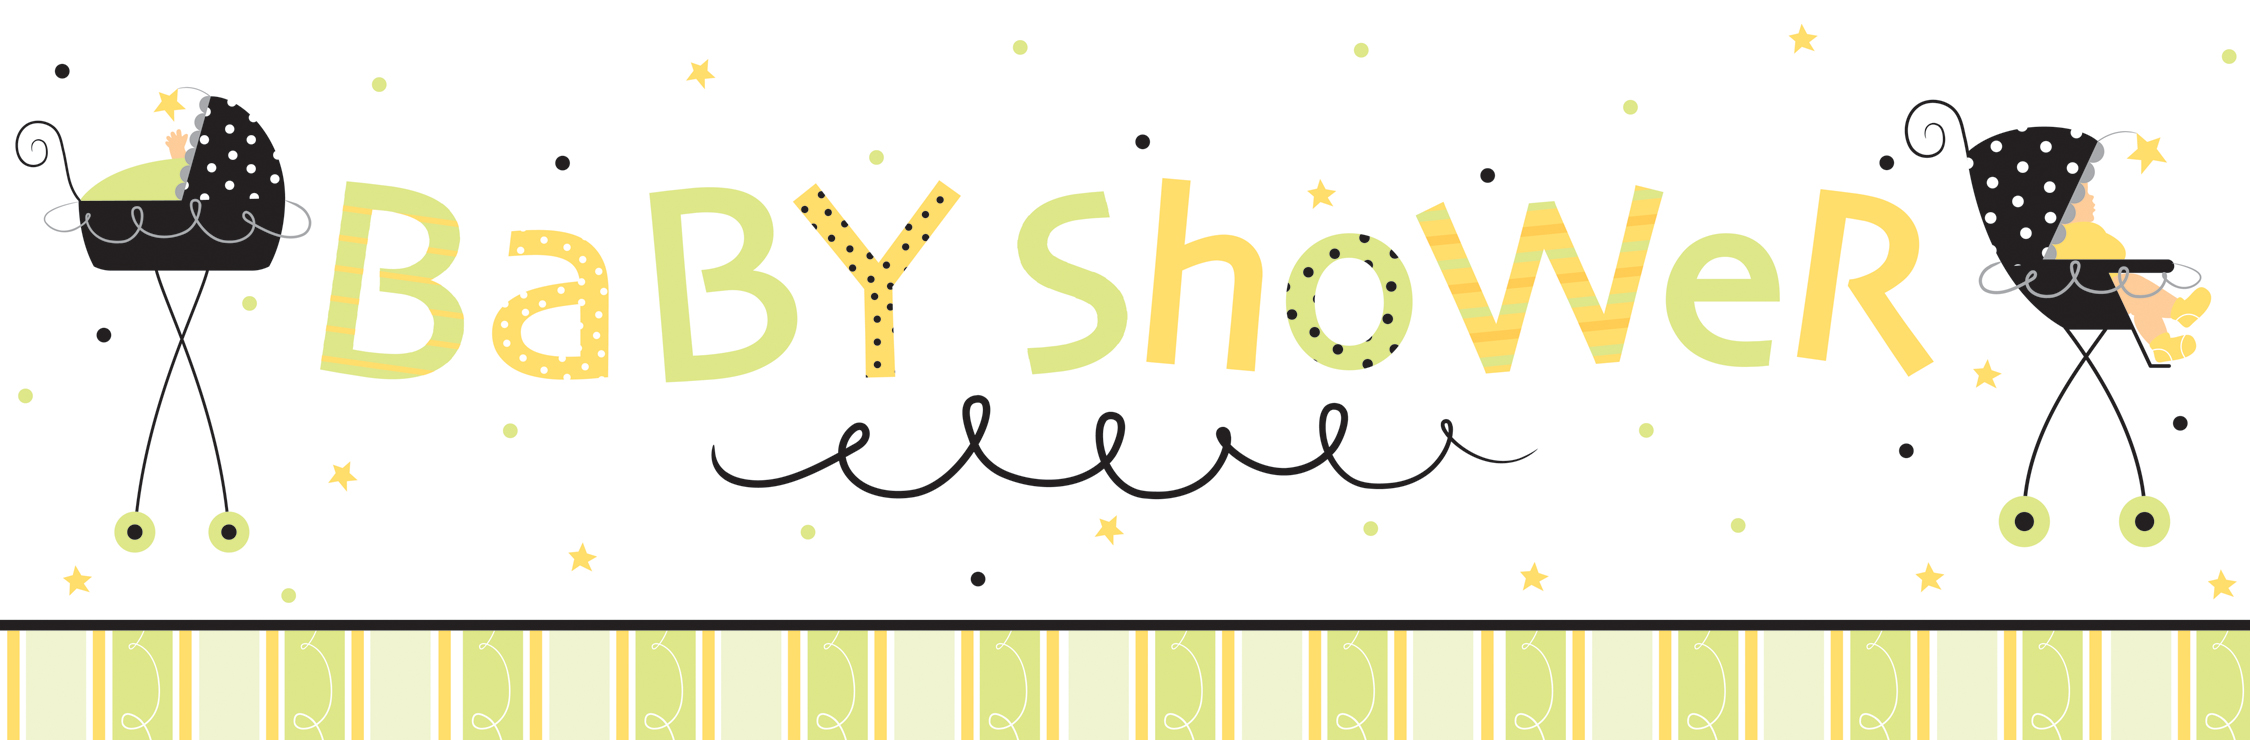 Full Size of Baby Shower:89+ Indulging Baby Shower Banner Picture Inspirations Baby Shower Snacks Baby Shower Giveaways Baby Shower Ideas Baby Shower Hairstyles Baby Shower Napkins